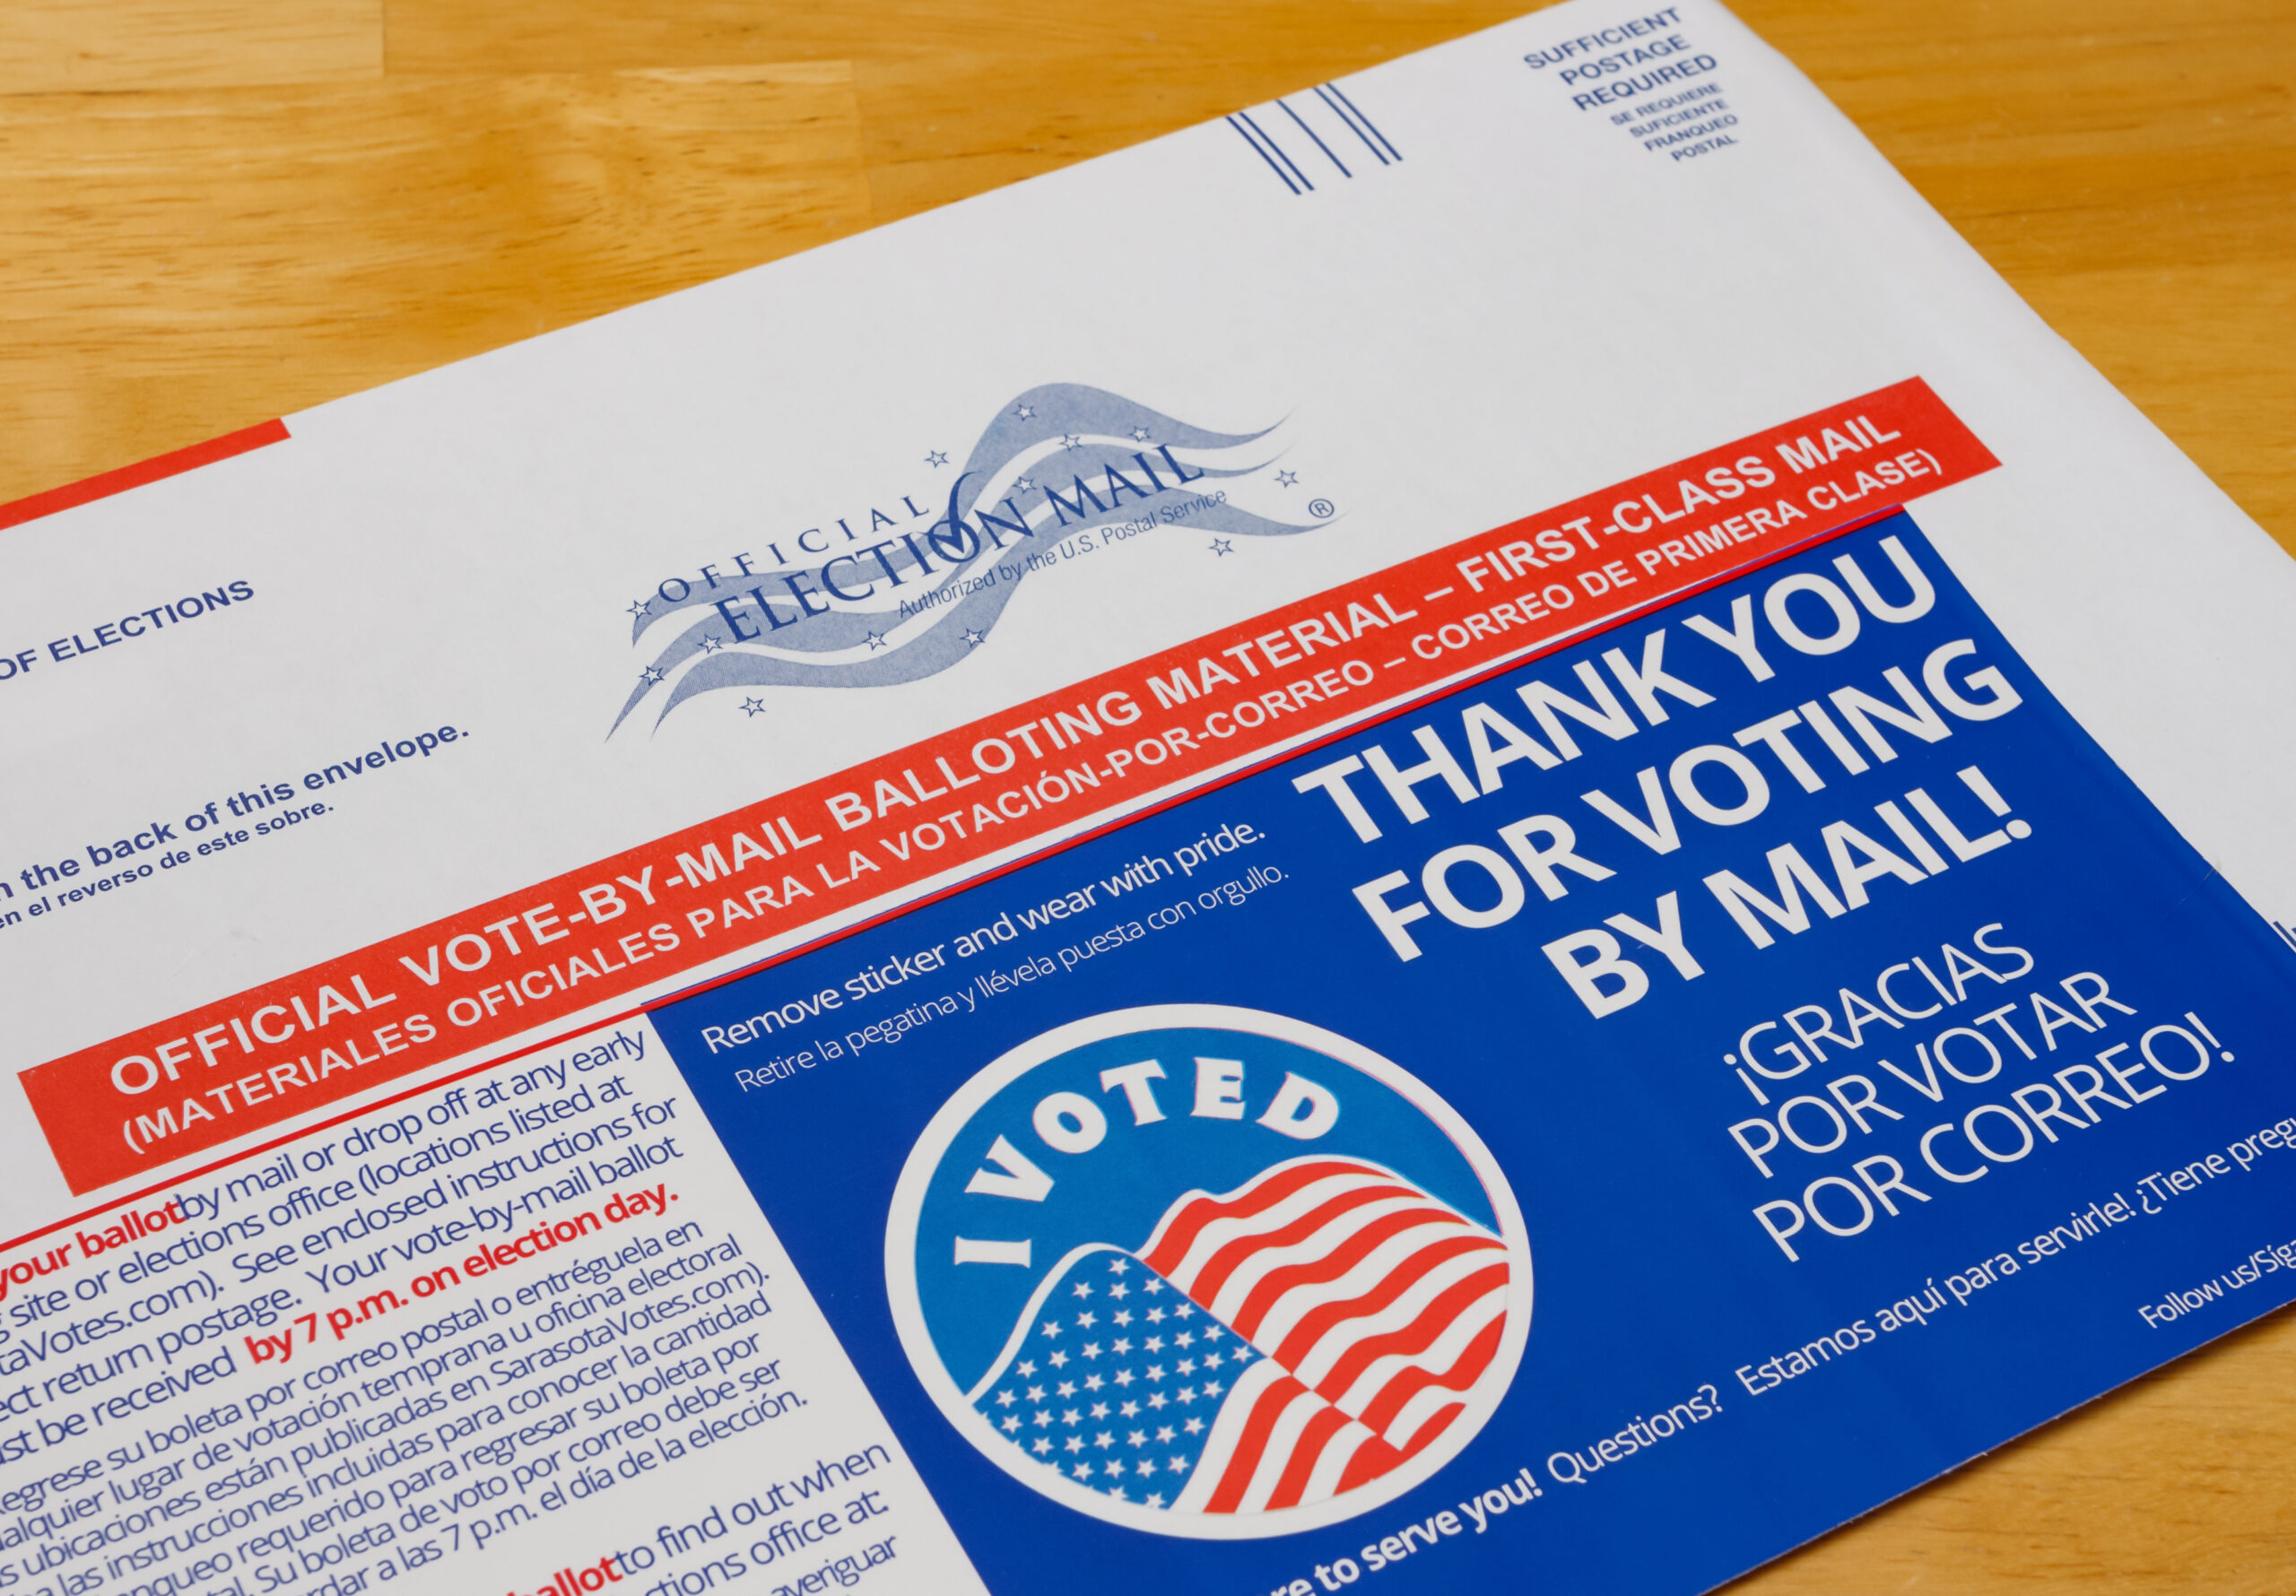 Voting in New Jersey: What Individuals with Disabilities Need to Know About the 2021 Election